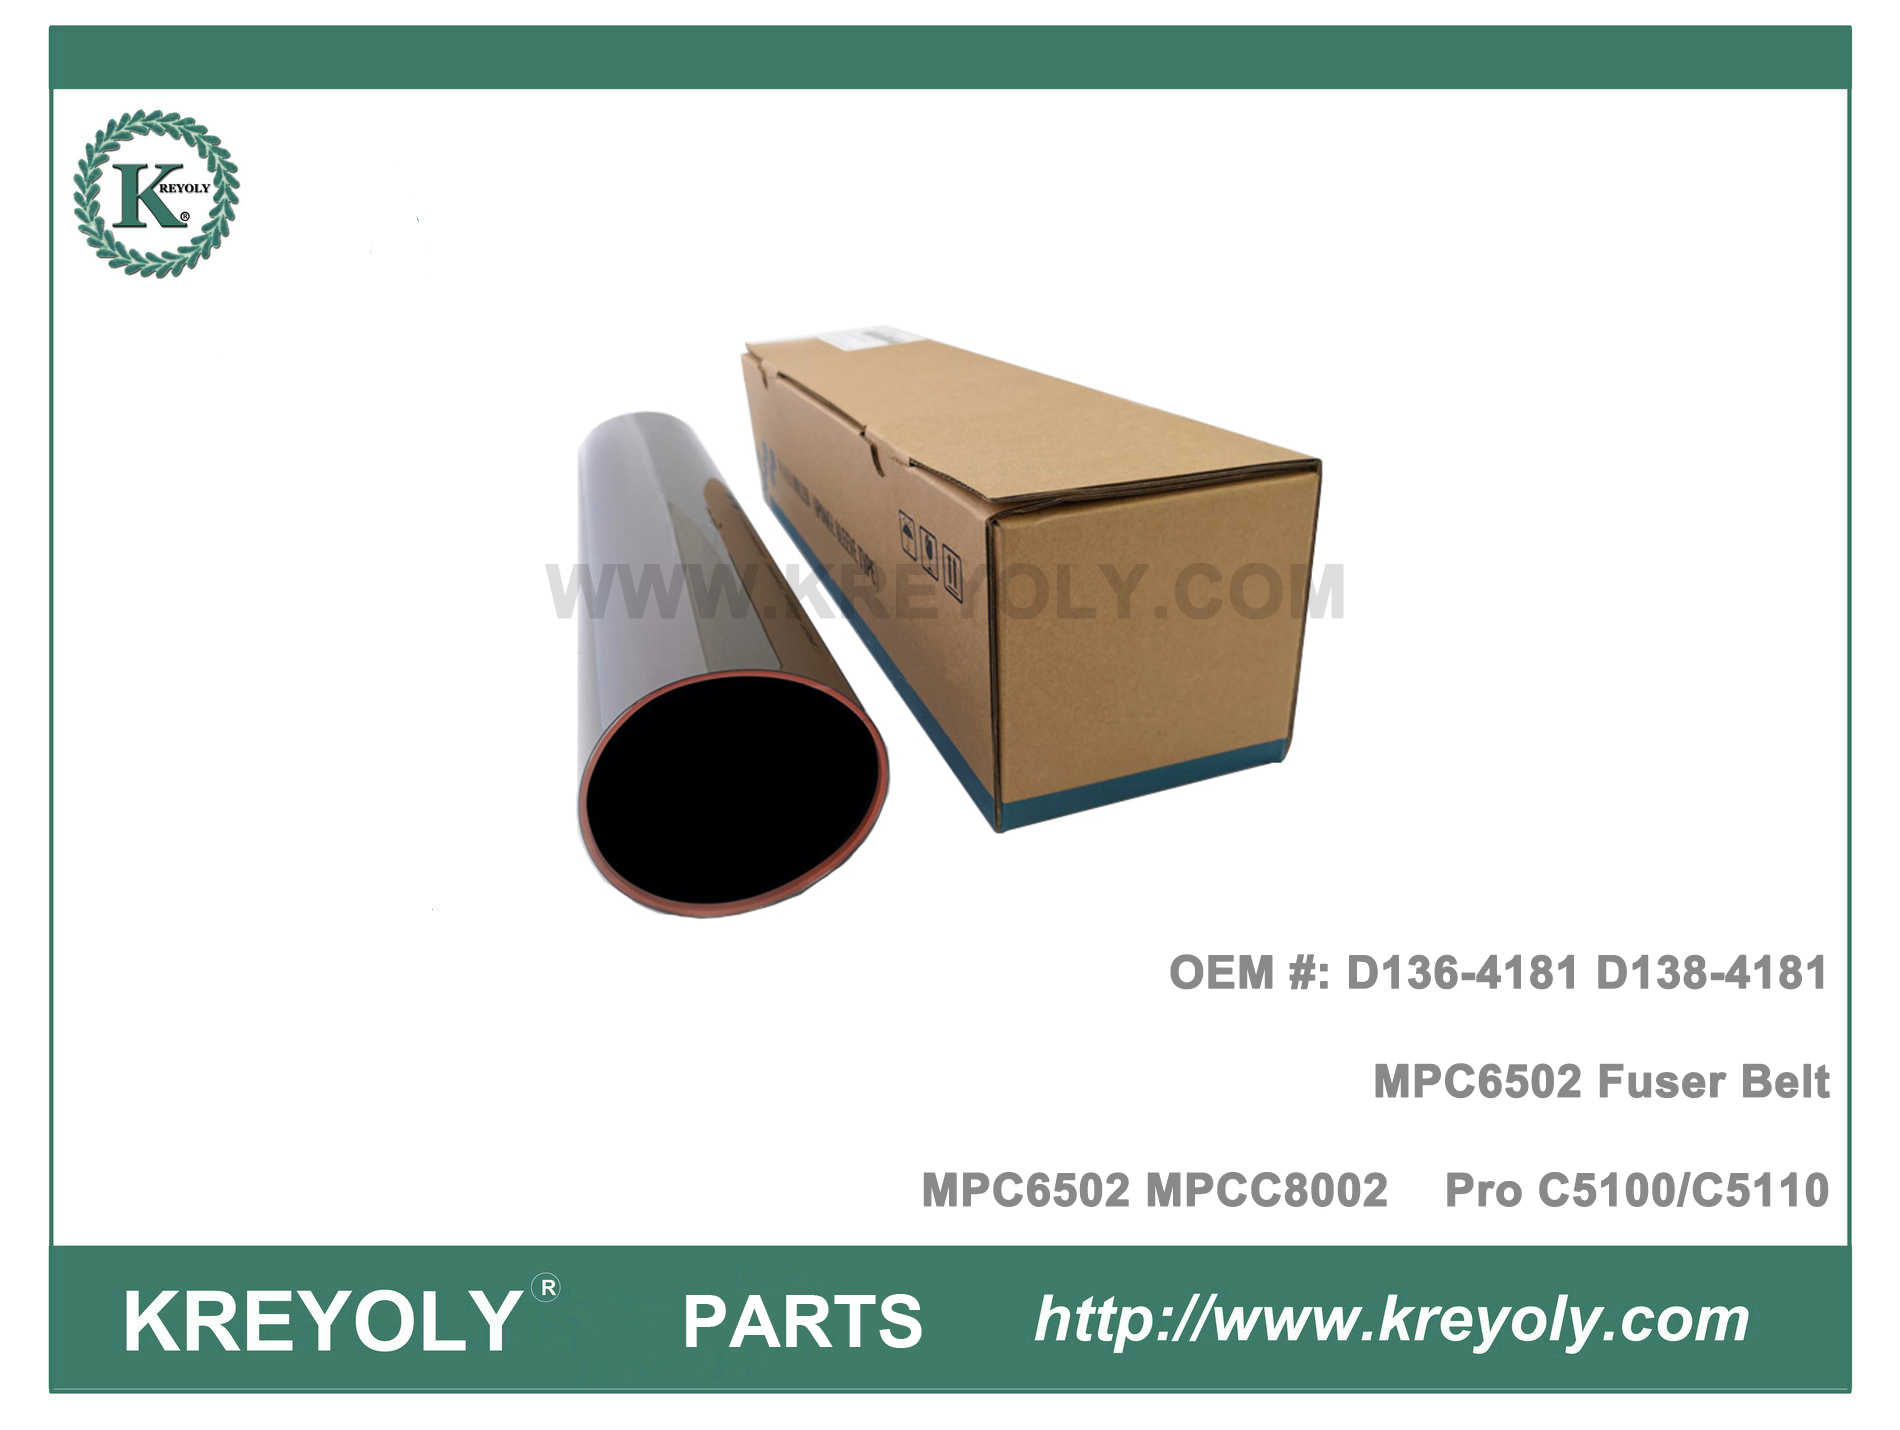 D136-4181 For Rioch MP C6502 C8002 Pro C5100 C5110 Fuser Belt D138-4181